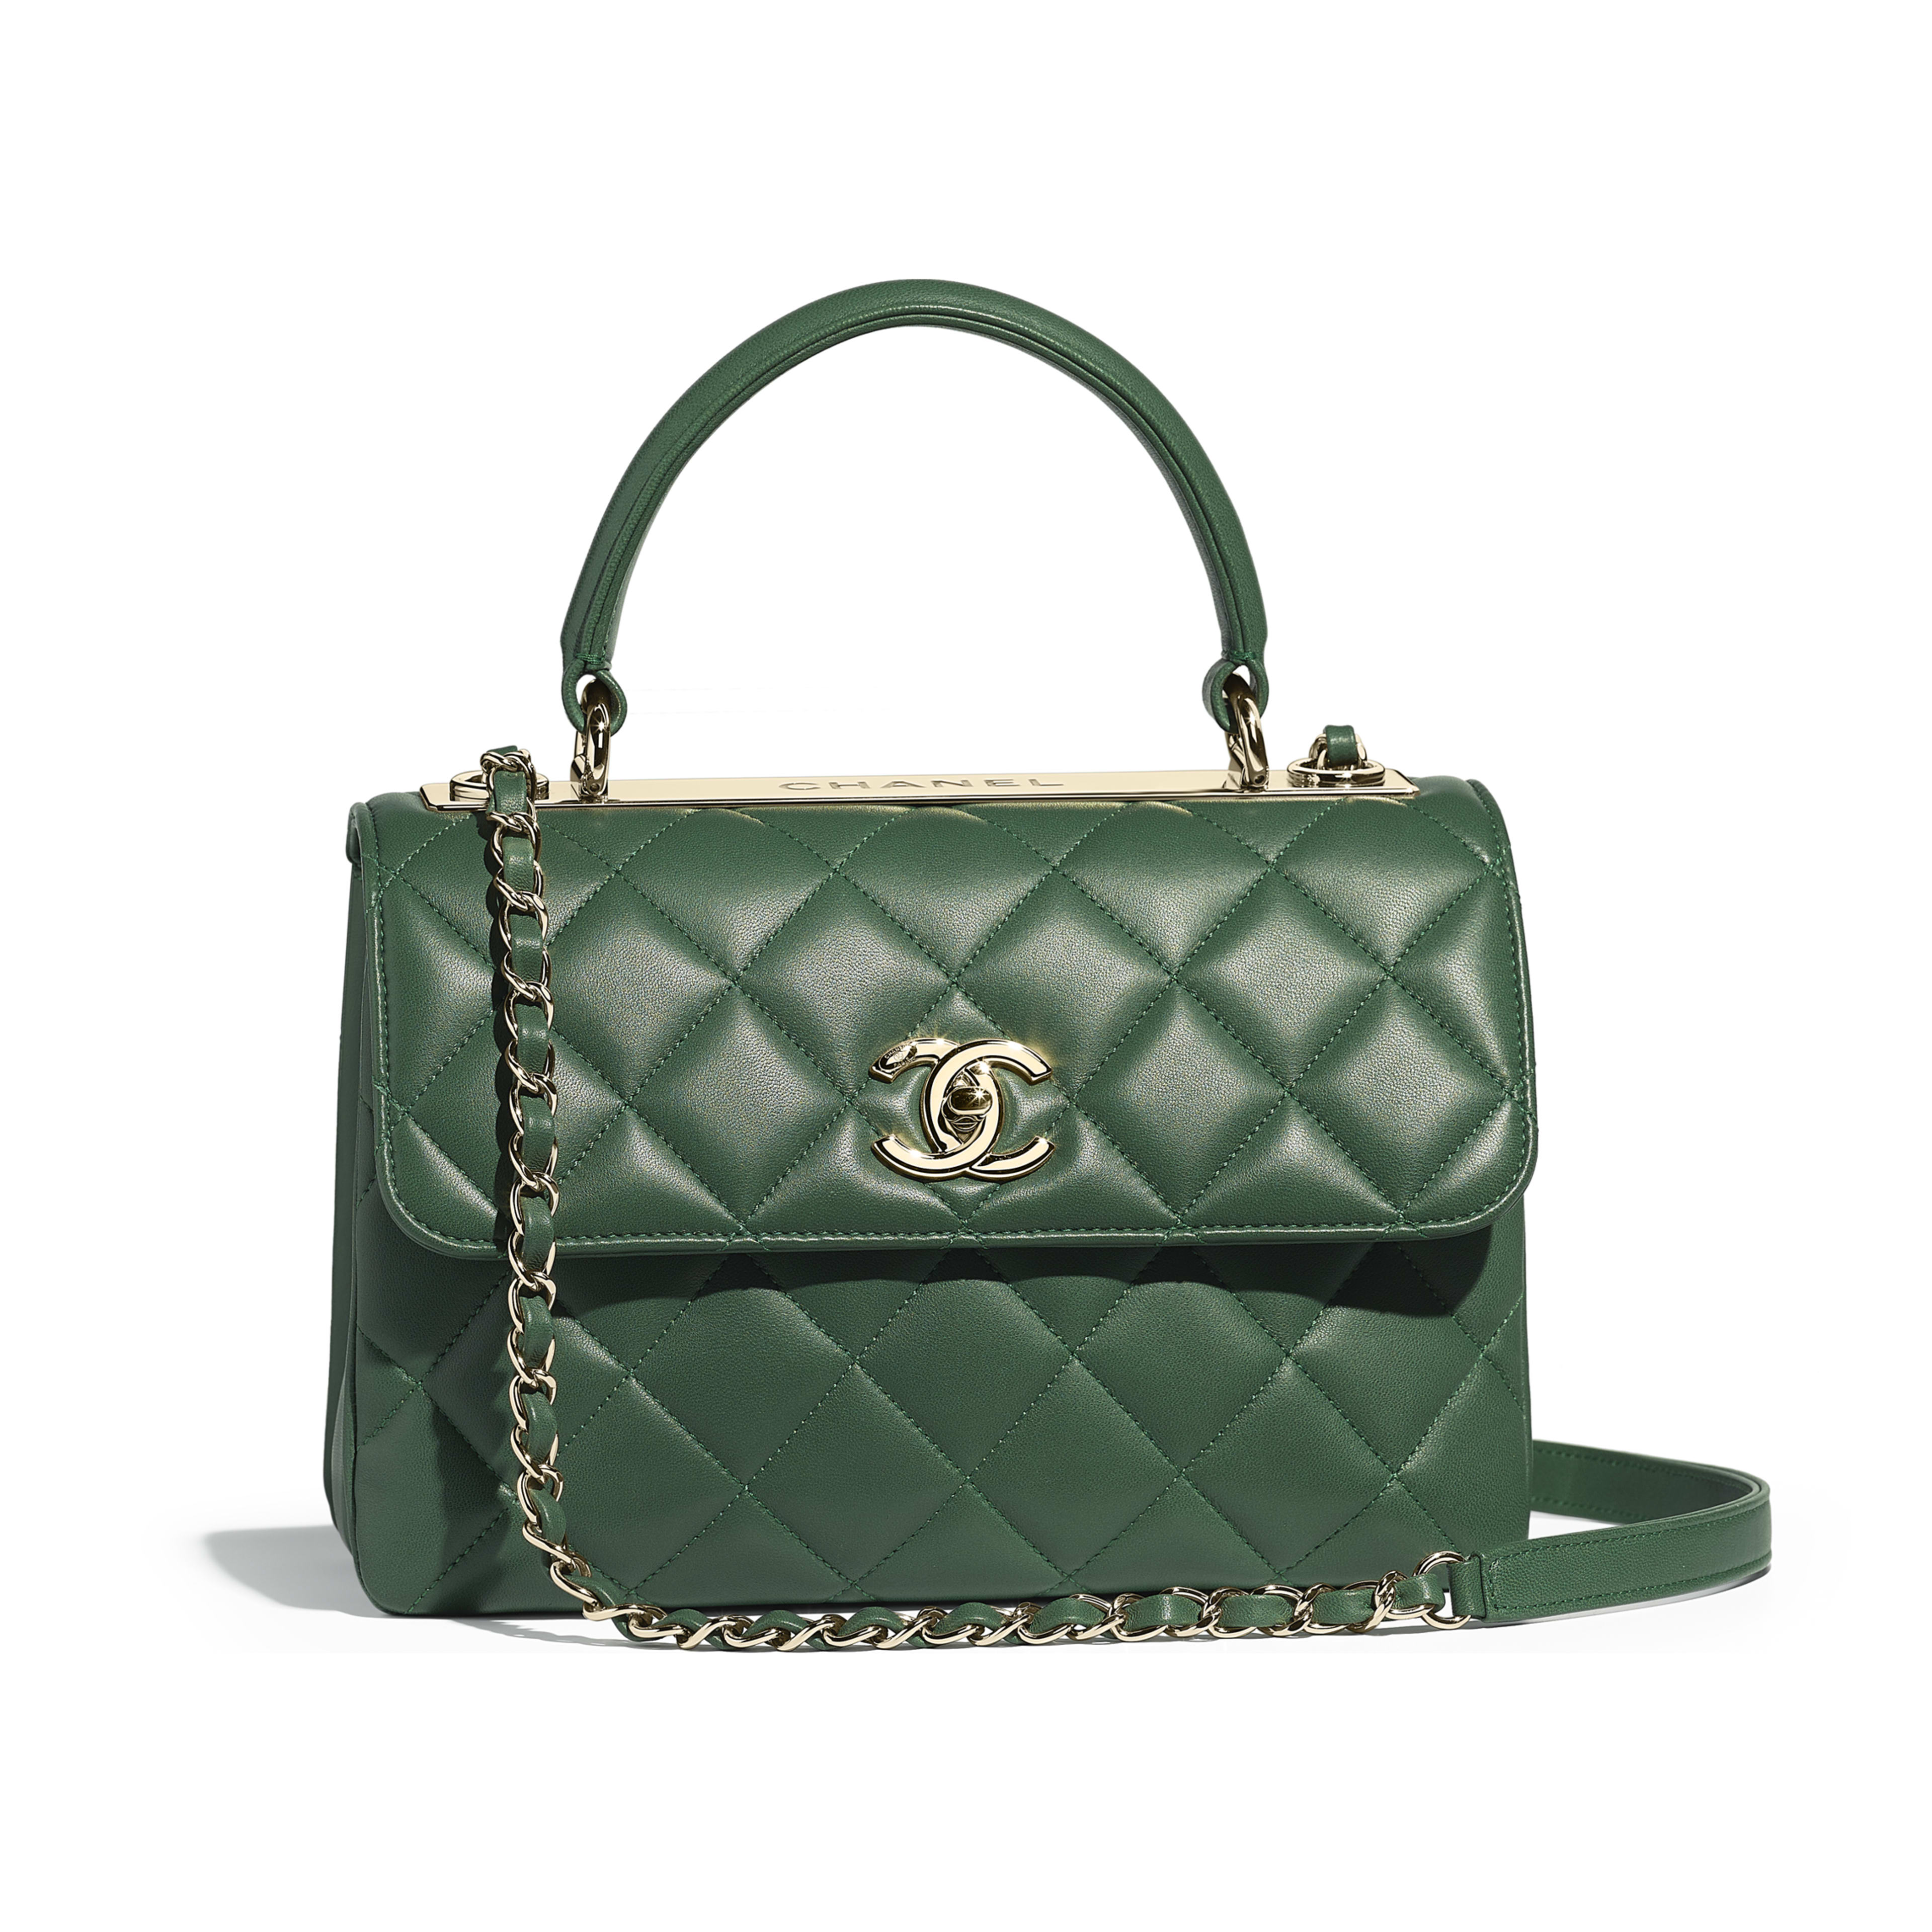 Small Flap Bag With Top Handle Green Lambskin Gold Tone Metal